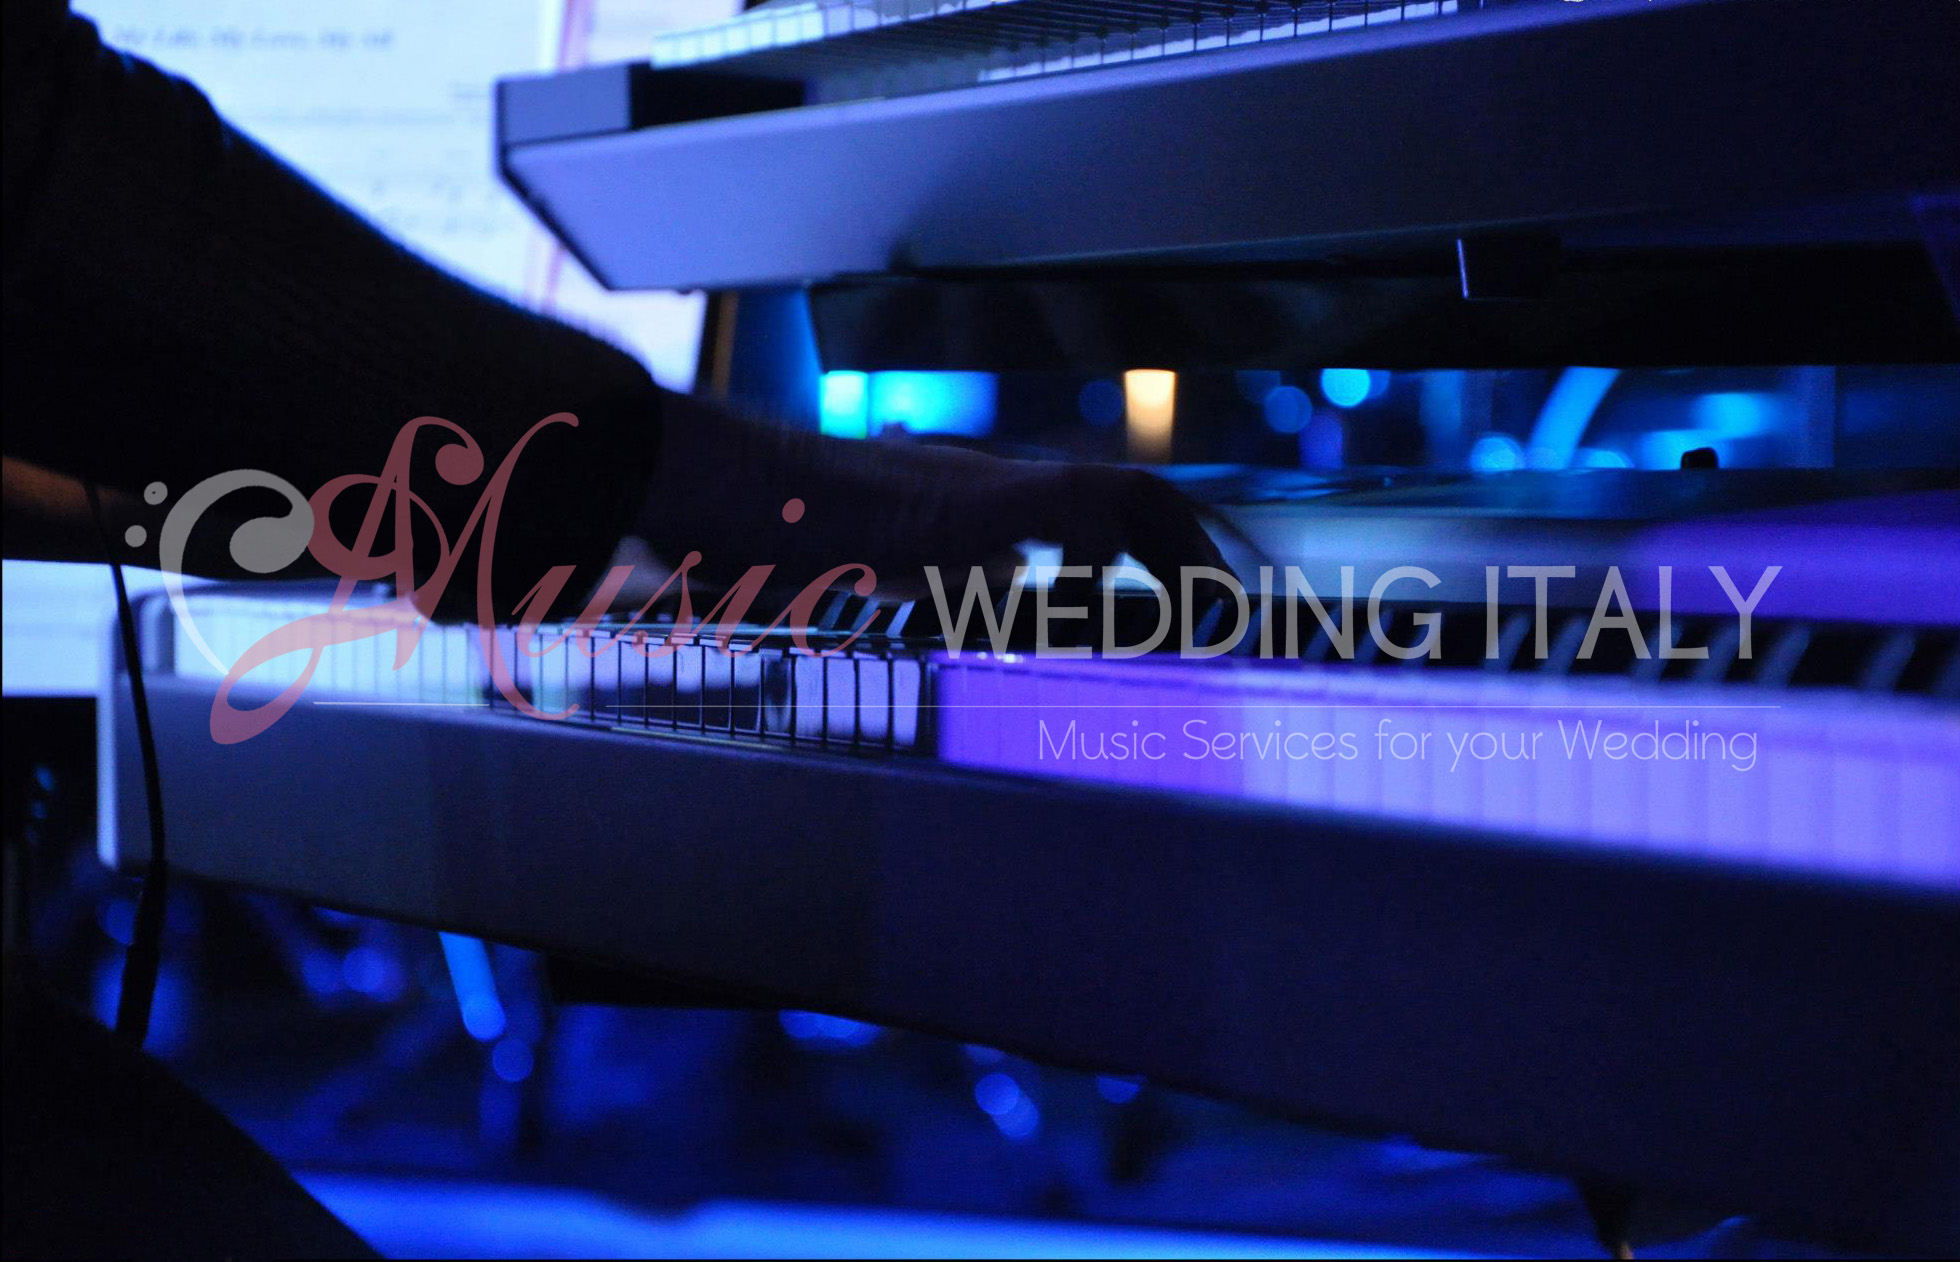 wedding band Amalfi coast, wedding band, wedding live band rome